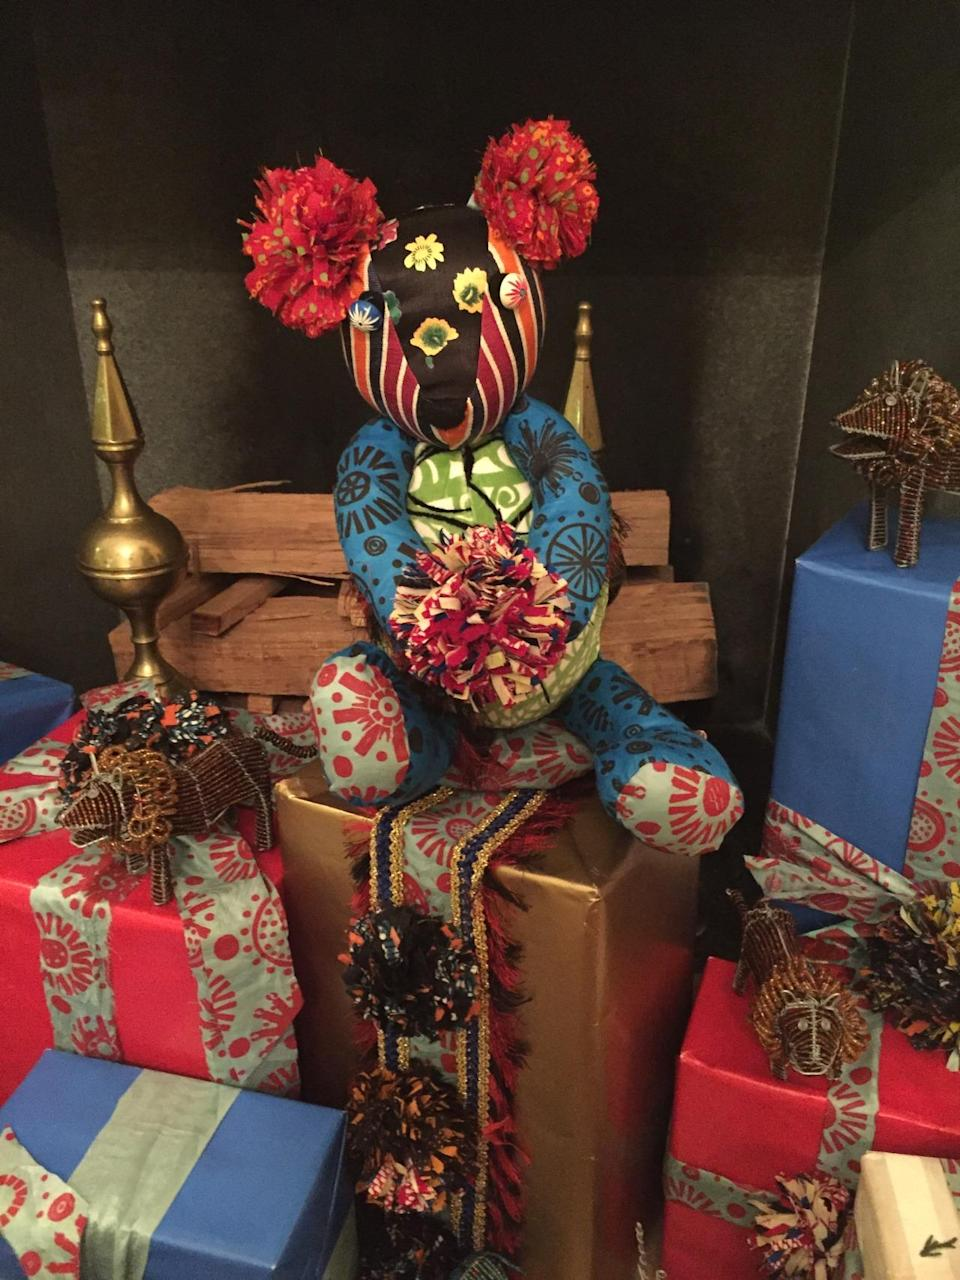 <p>Designer Duro Olowu created these custom teddy bears using vintage African fabric to decorate the Vermeil Room. (Photo: Cassie Carothers)</p>